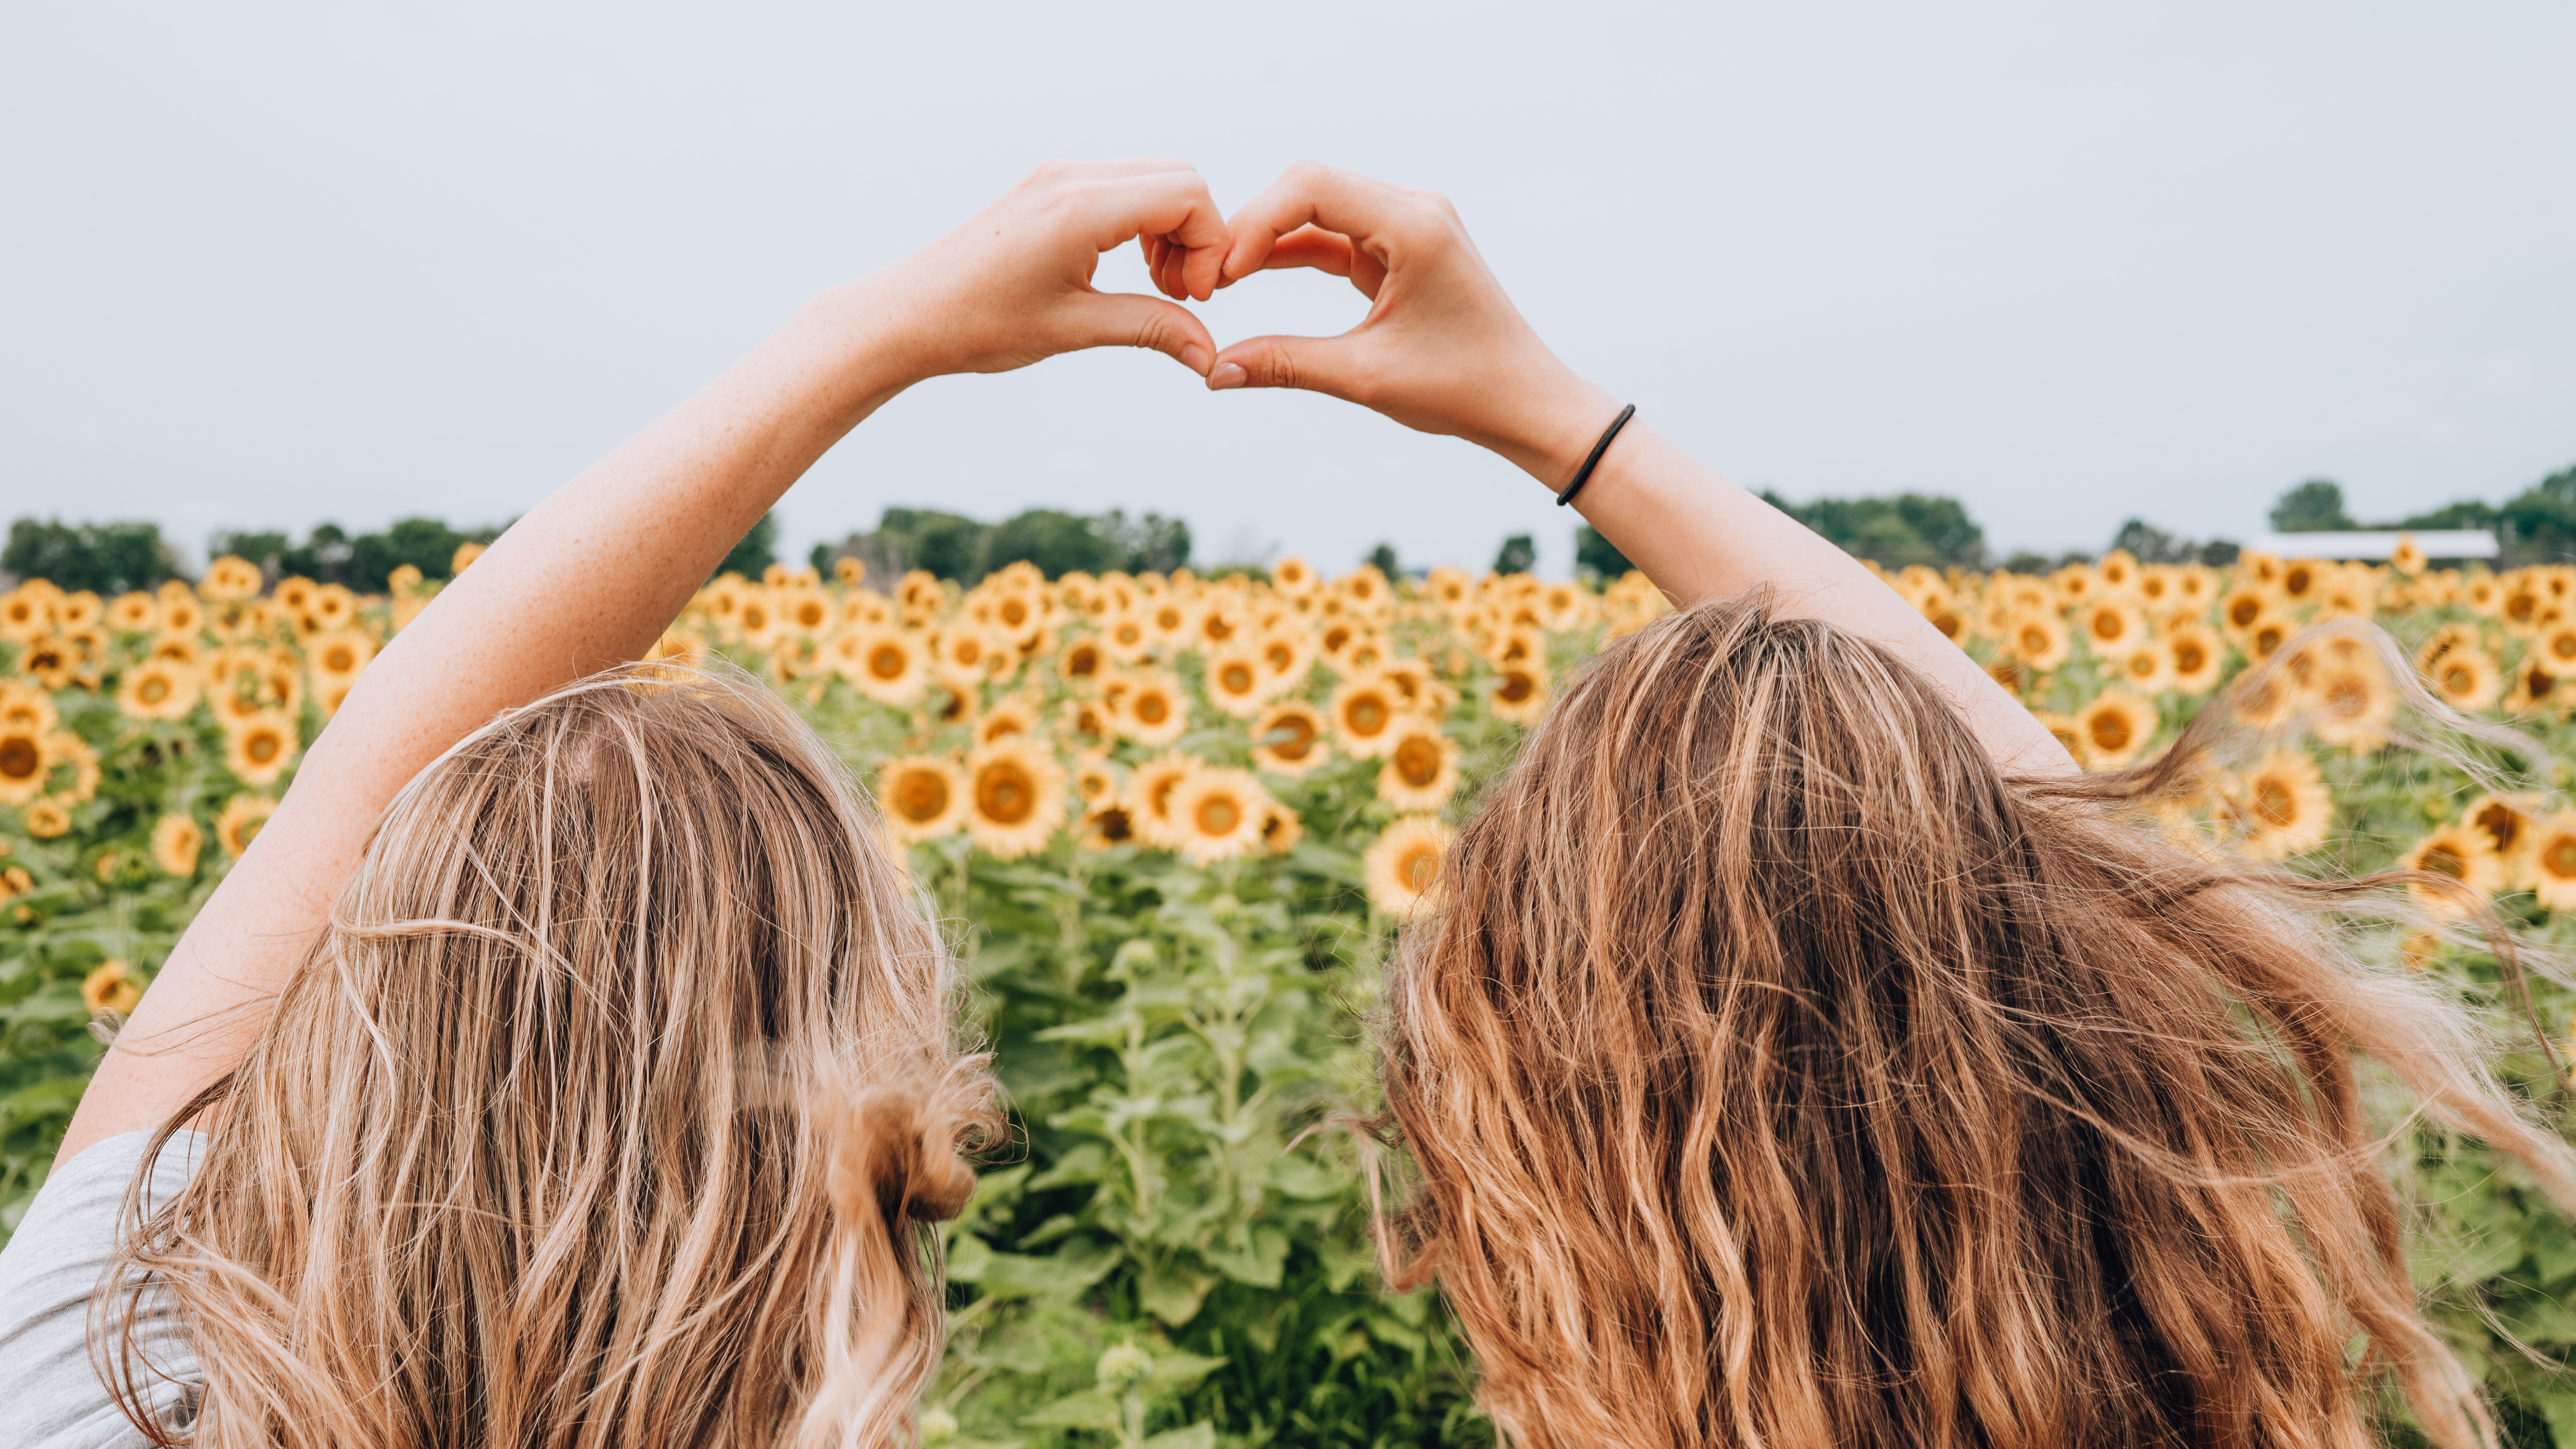 two young people in front of field of sunflowers